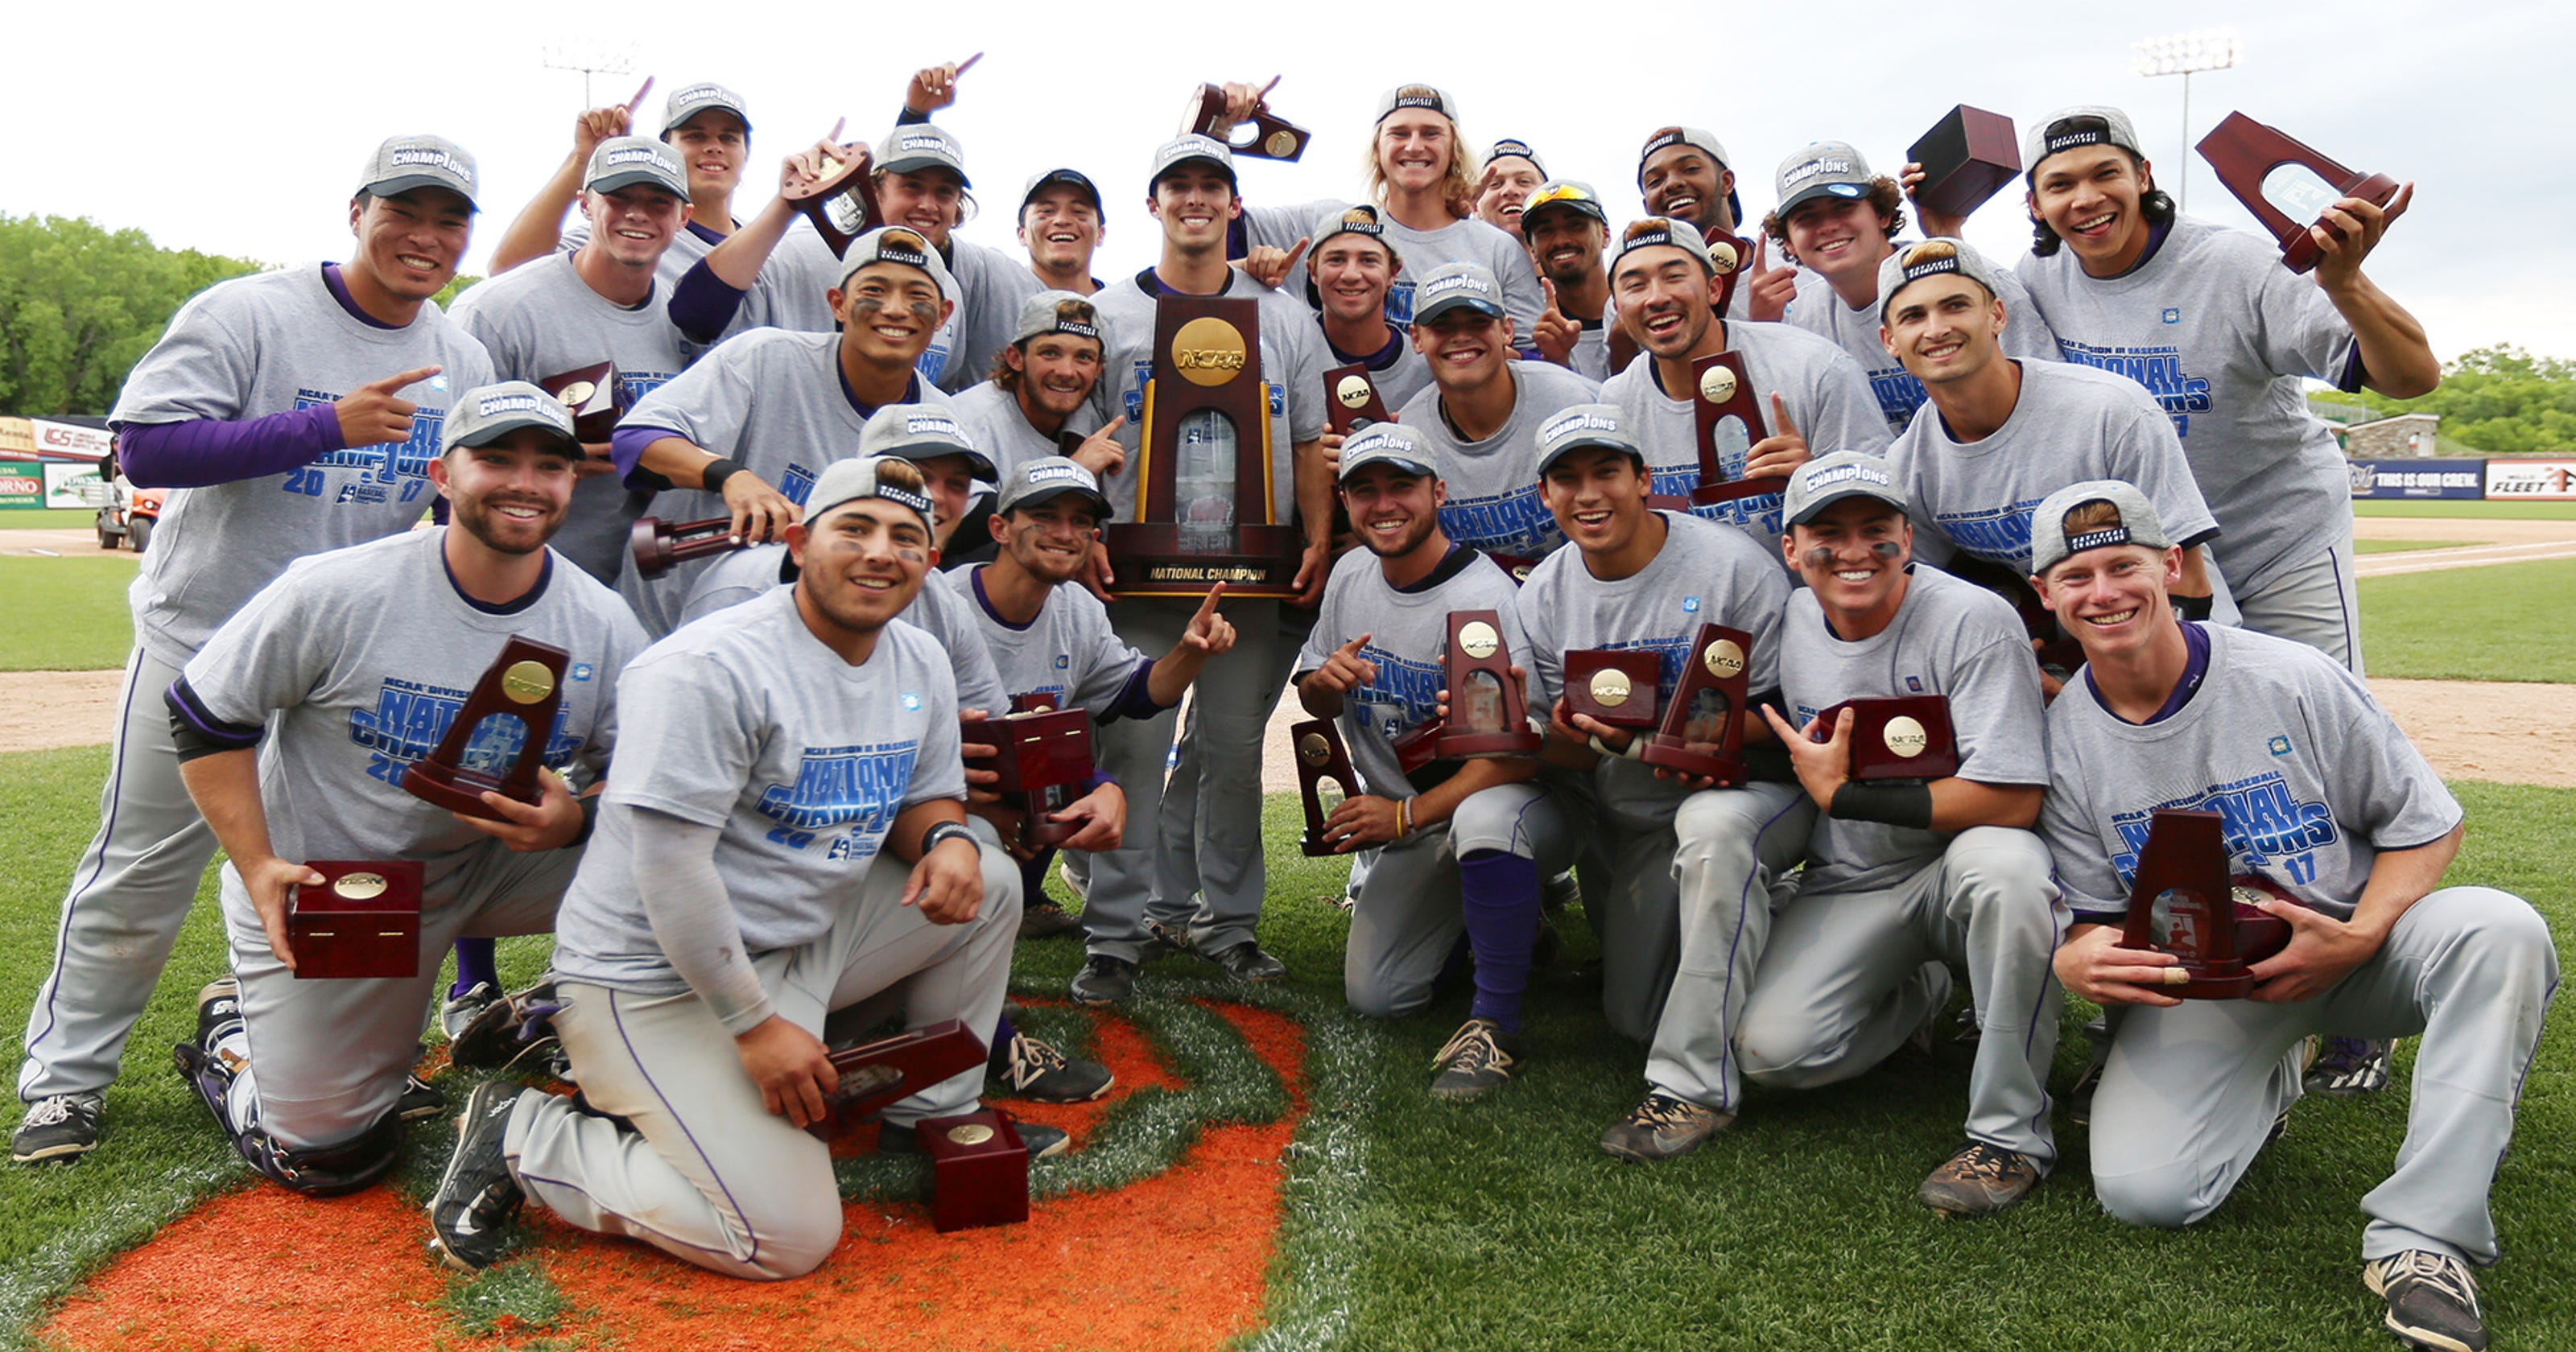 Cal Lutheran wins Division III College World Series title